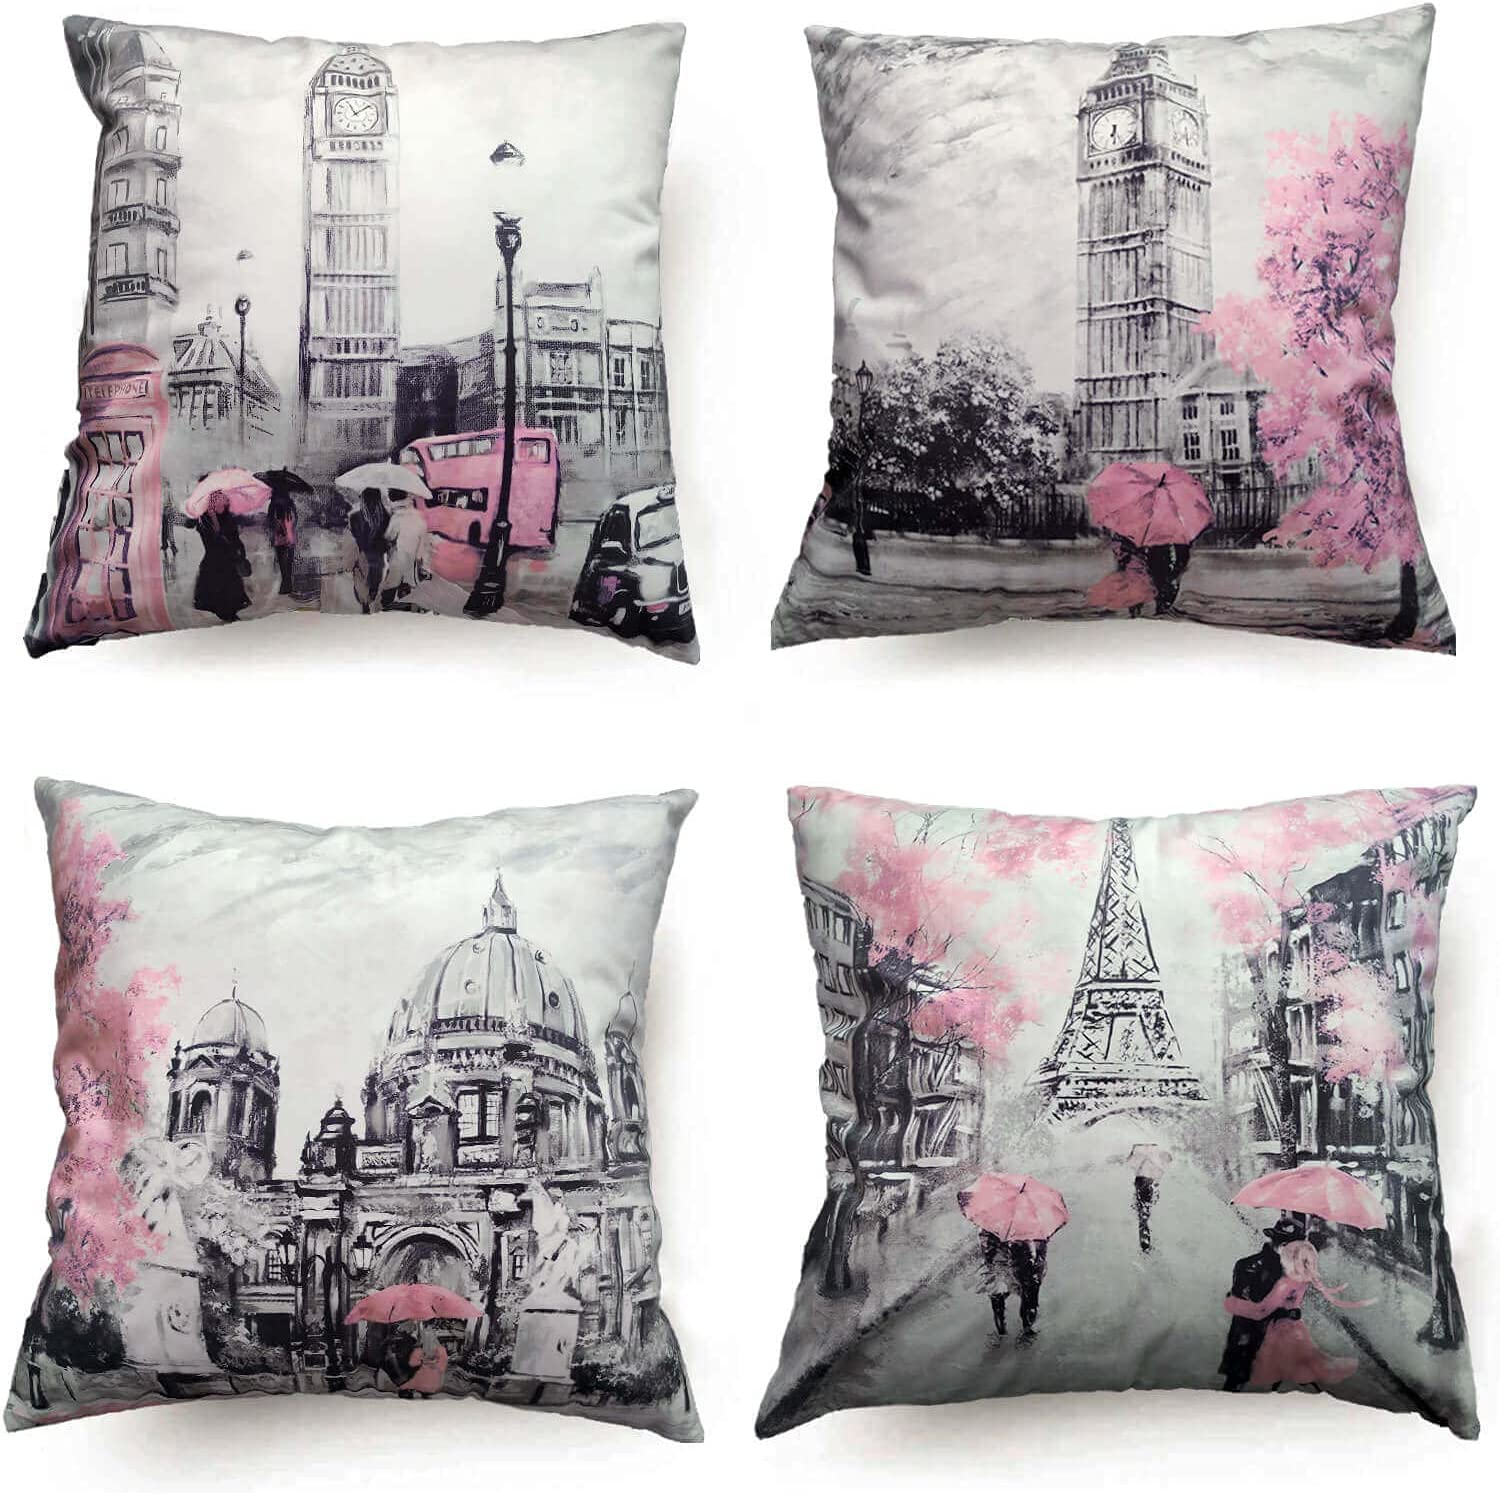 Paris Decor for Bedroom Throw Pillow Covers 18x18 for Couch Living Room Accent Decorative Pillows Covers Cute Pink Eiffel Tower Decor Bedroom Decor for Couples Square Outdoor Pillow Case Set of 4